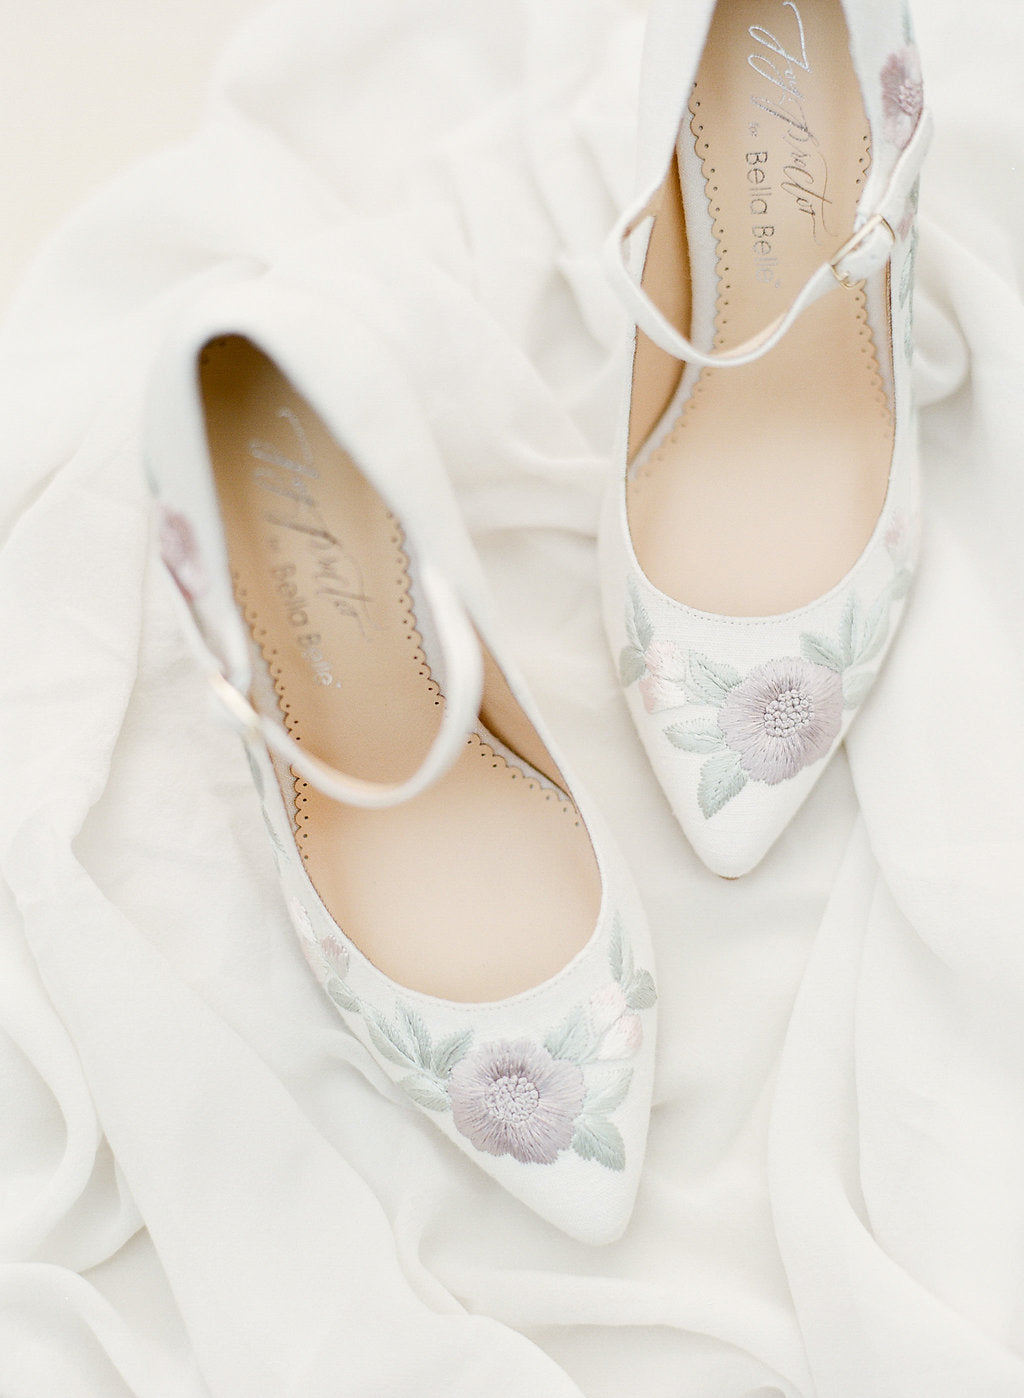 Bella Belle Adeialde floral vintage wedding heel by Joy Proctor